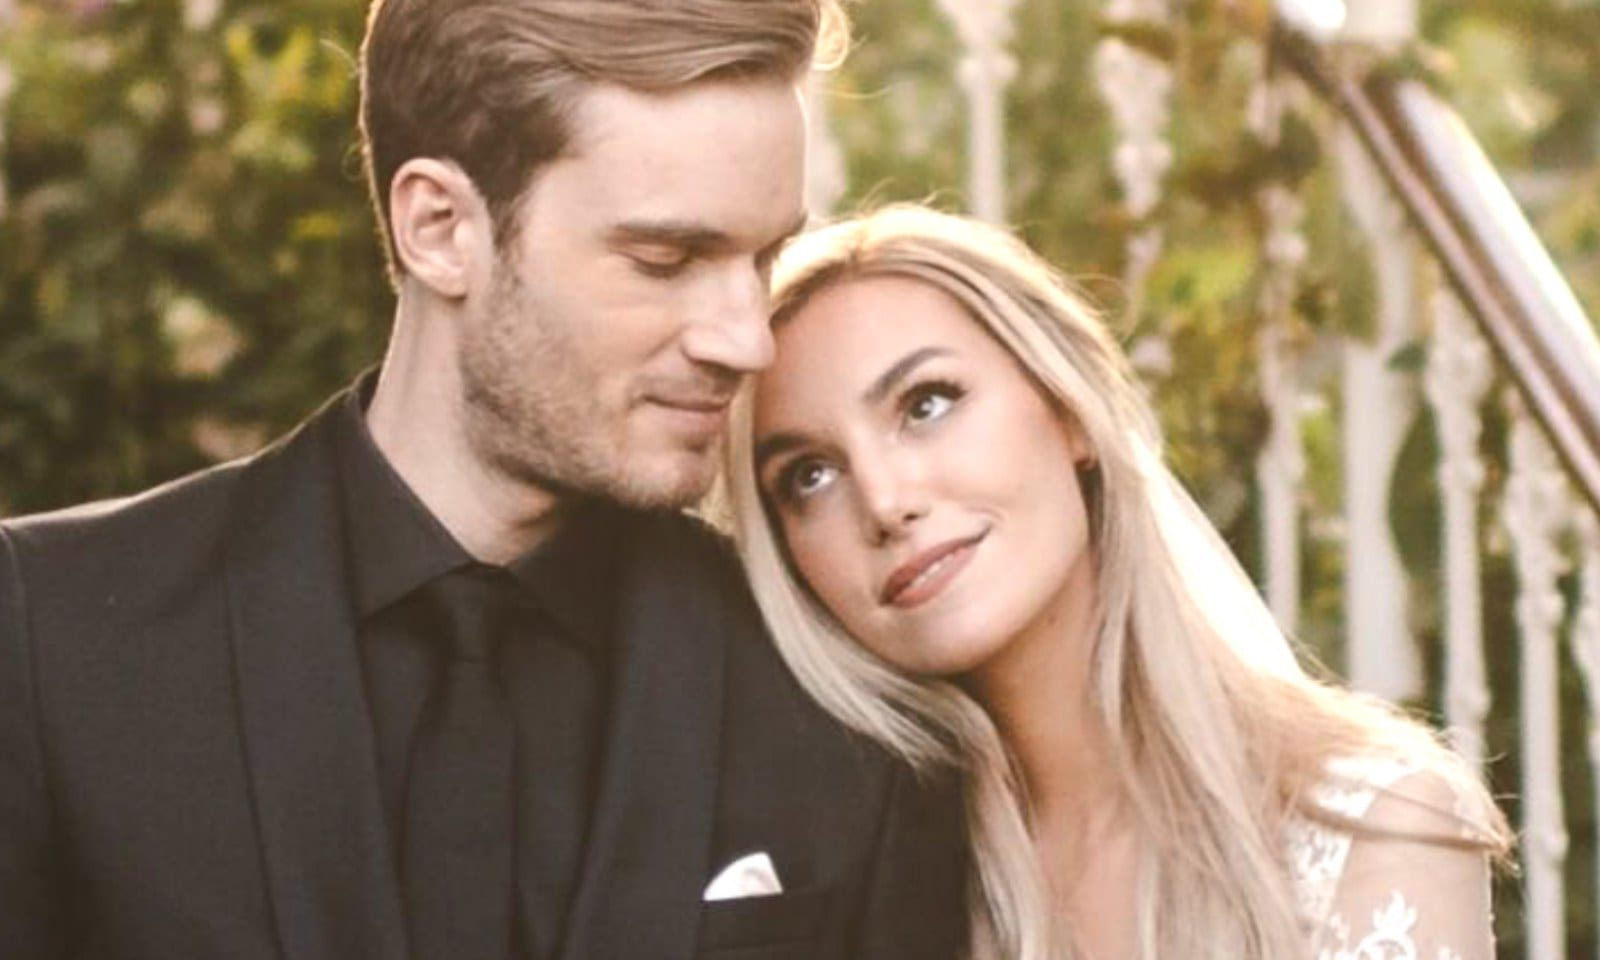 Who Is PewDiePie Dating?